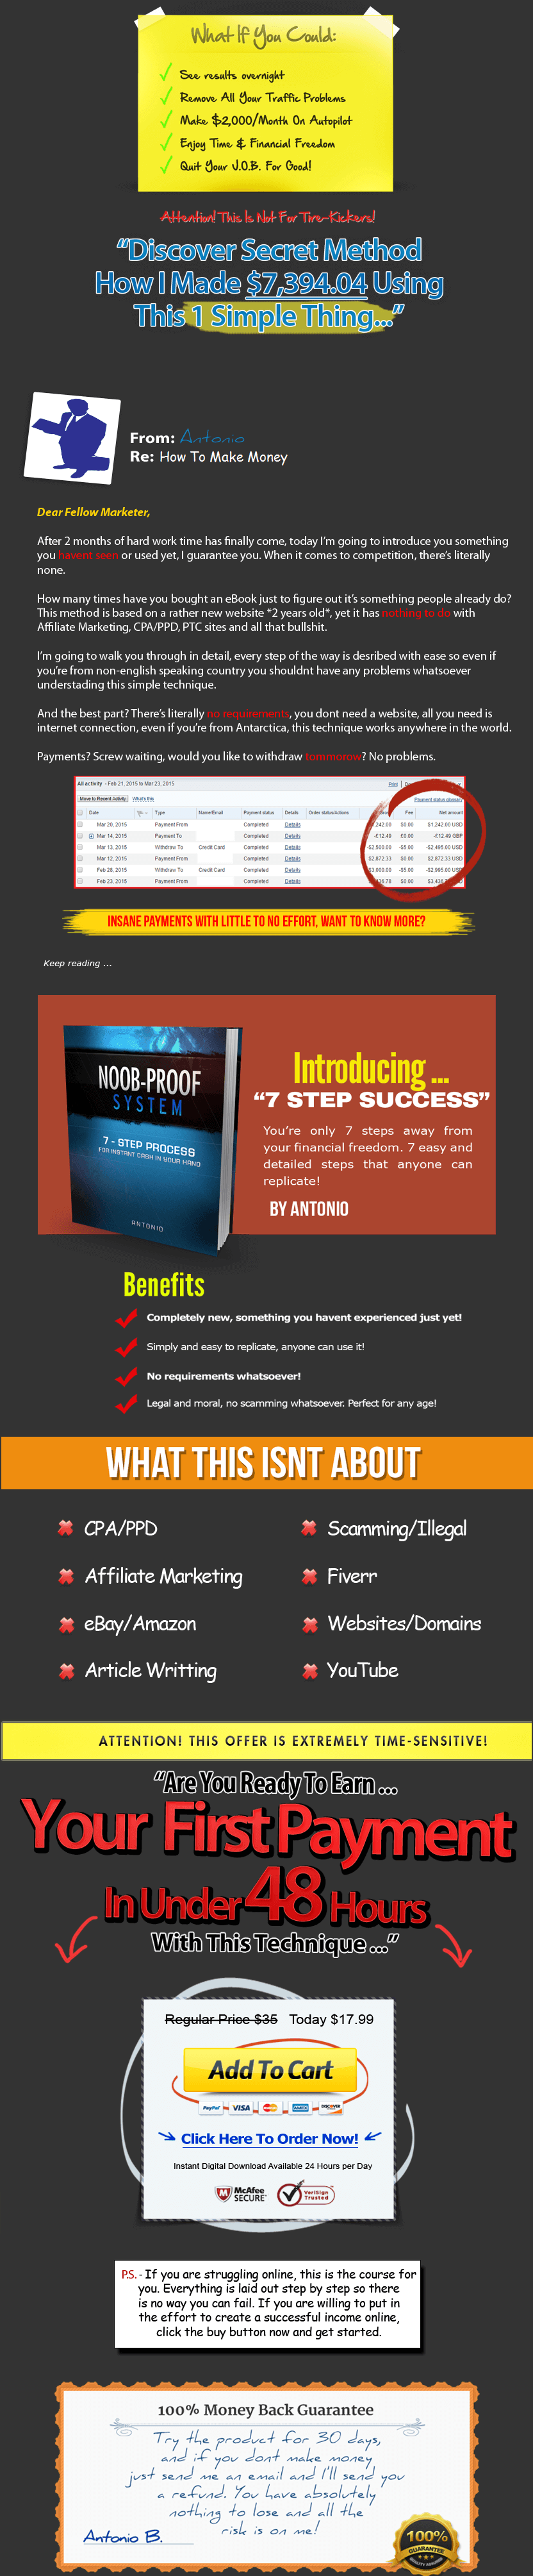 7 Steps to success with TeeSpring